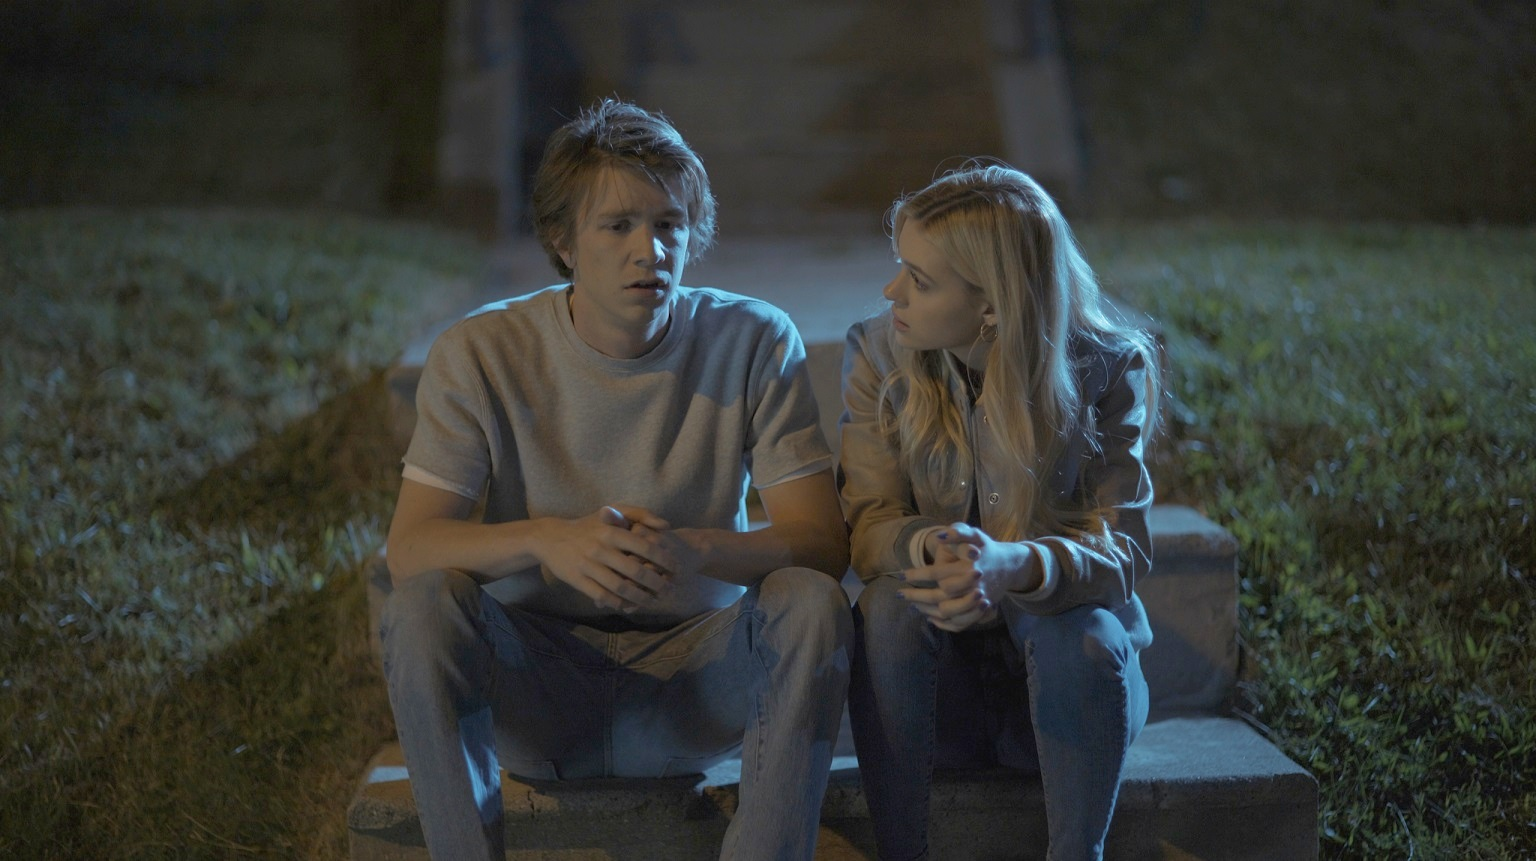 Thomas Mann and Nicola Peltz in the film.